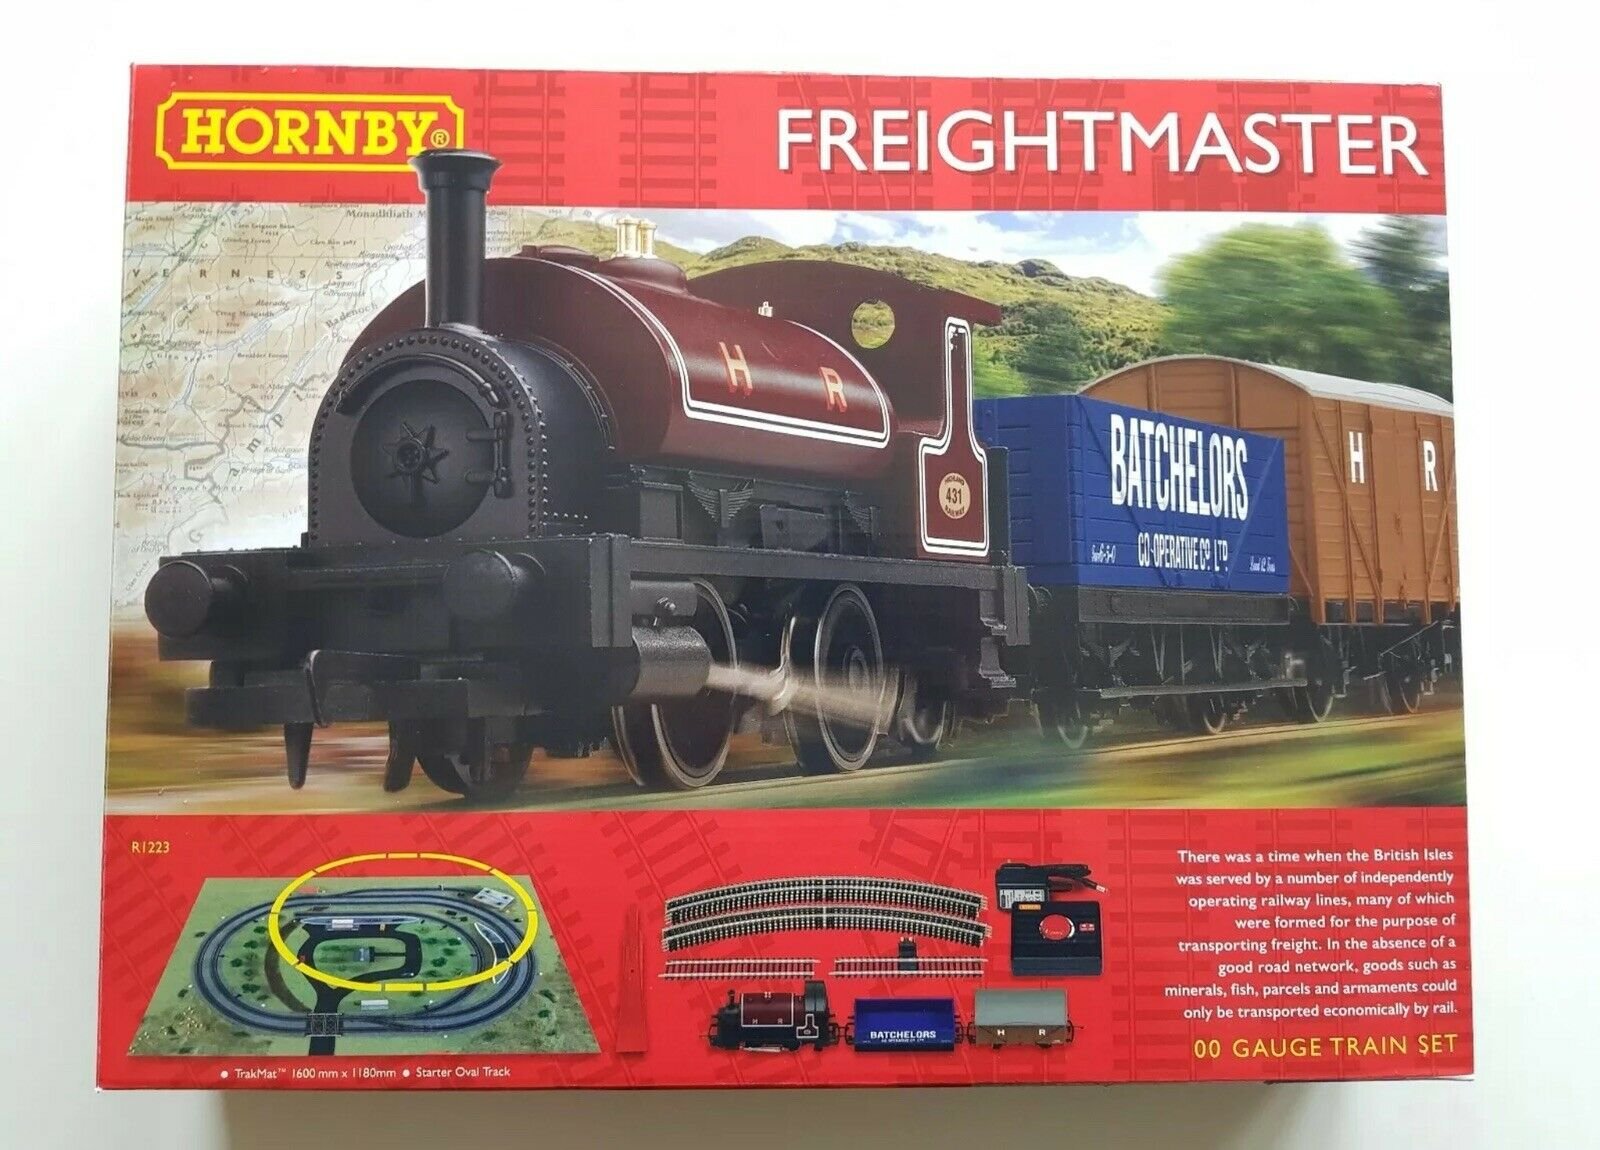 Hornby Freightmaster Train Set 00 Gauge R1223  nuovo